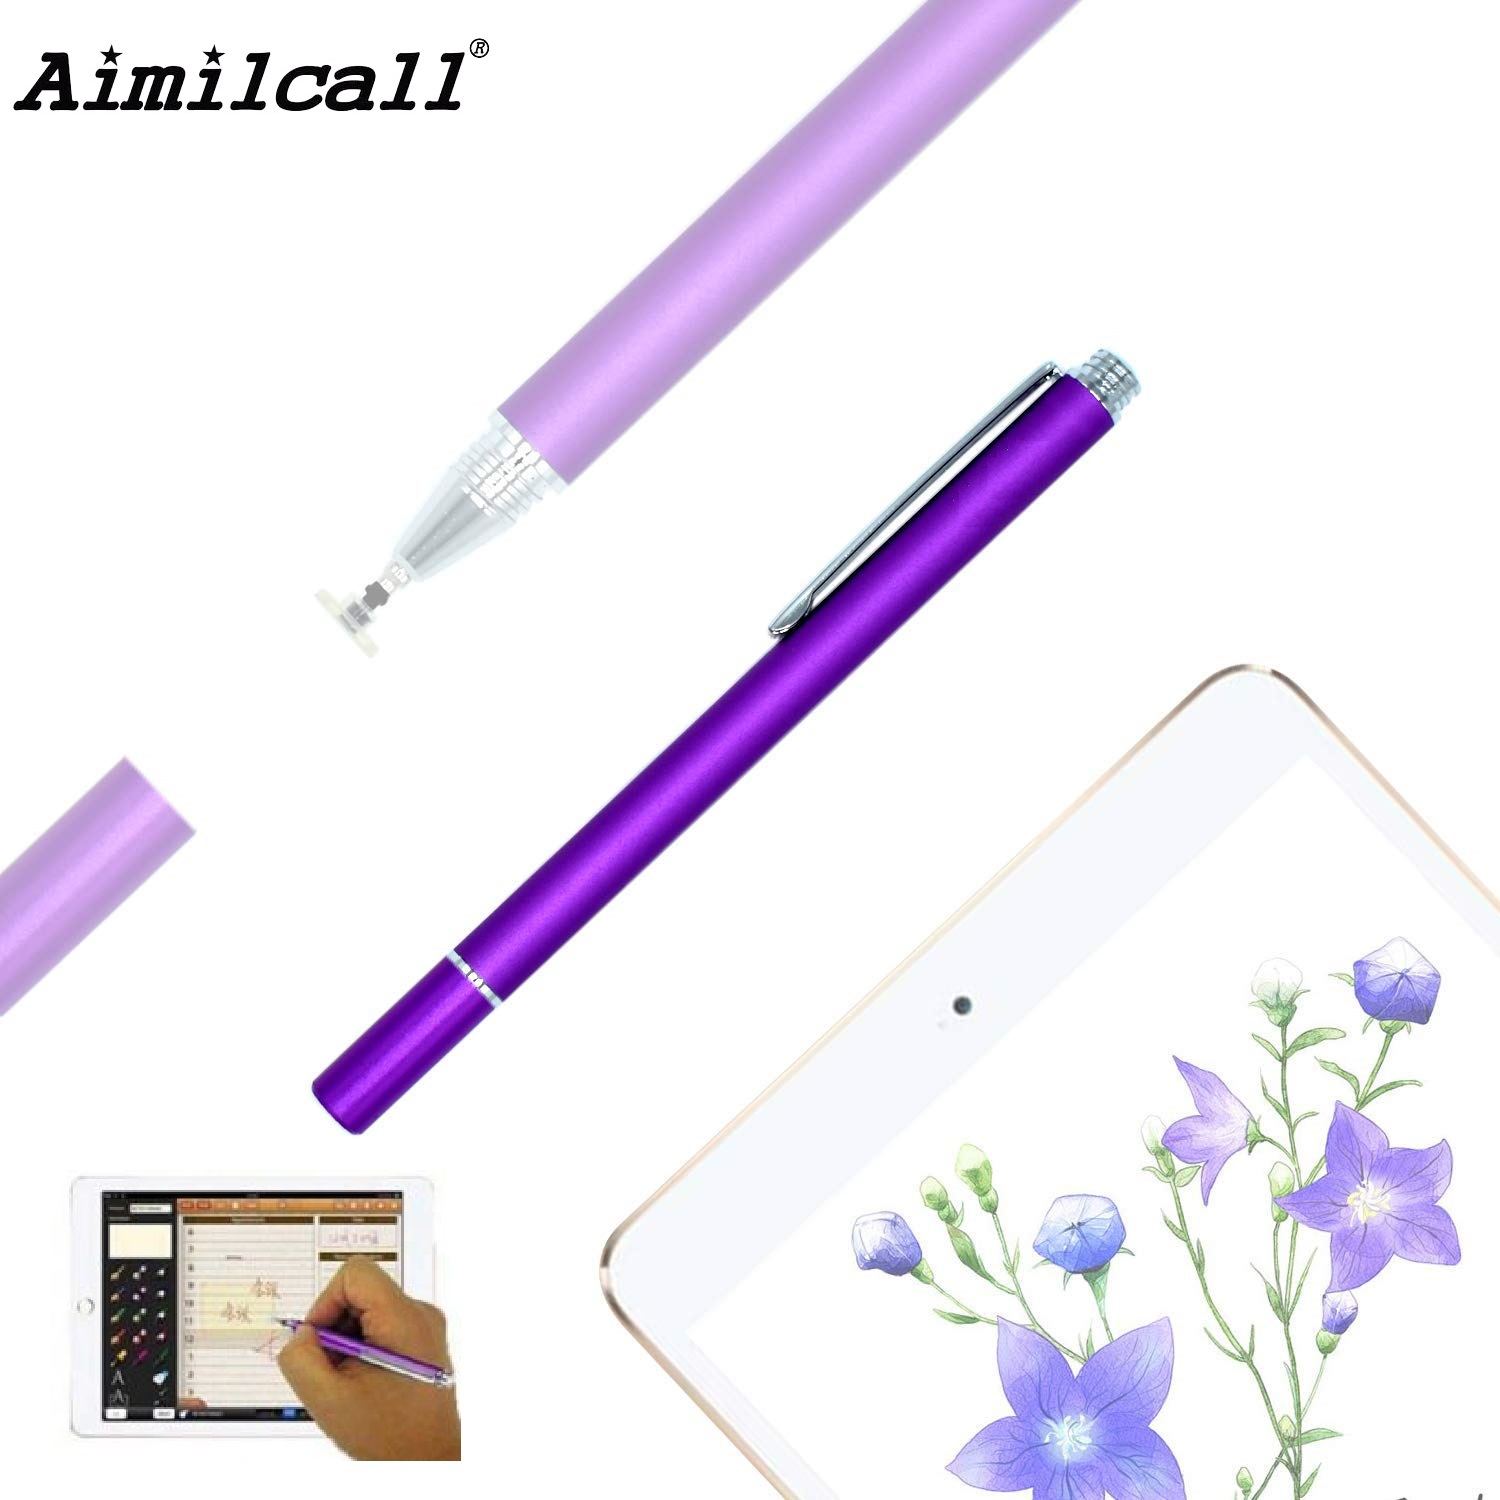 Fine Point Round Thin Tip Capacitive Touch Stylus Pen For iPhone iPad Samsung